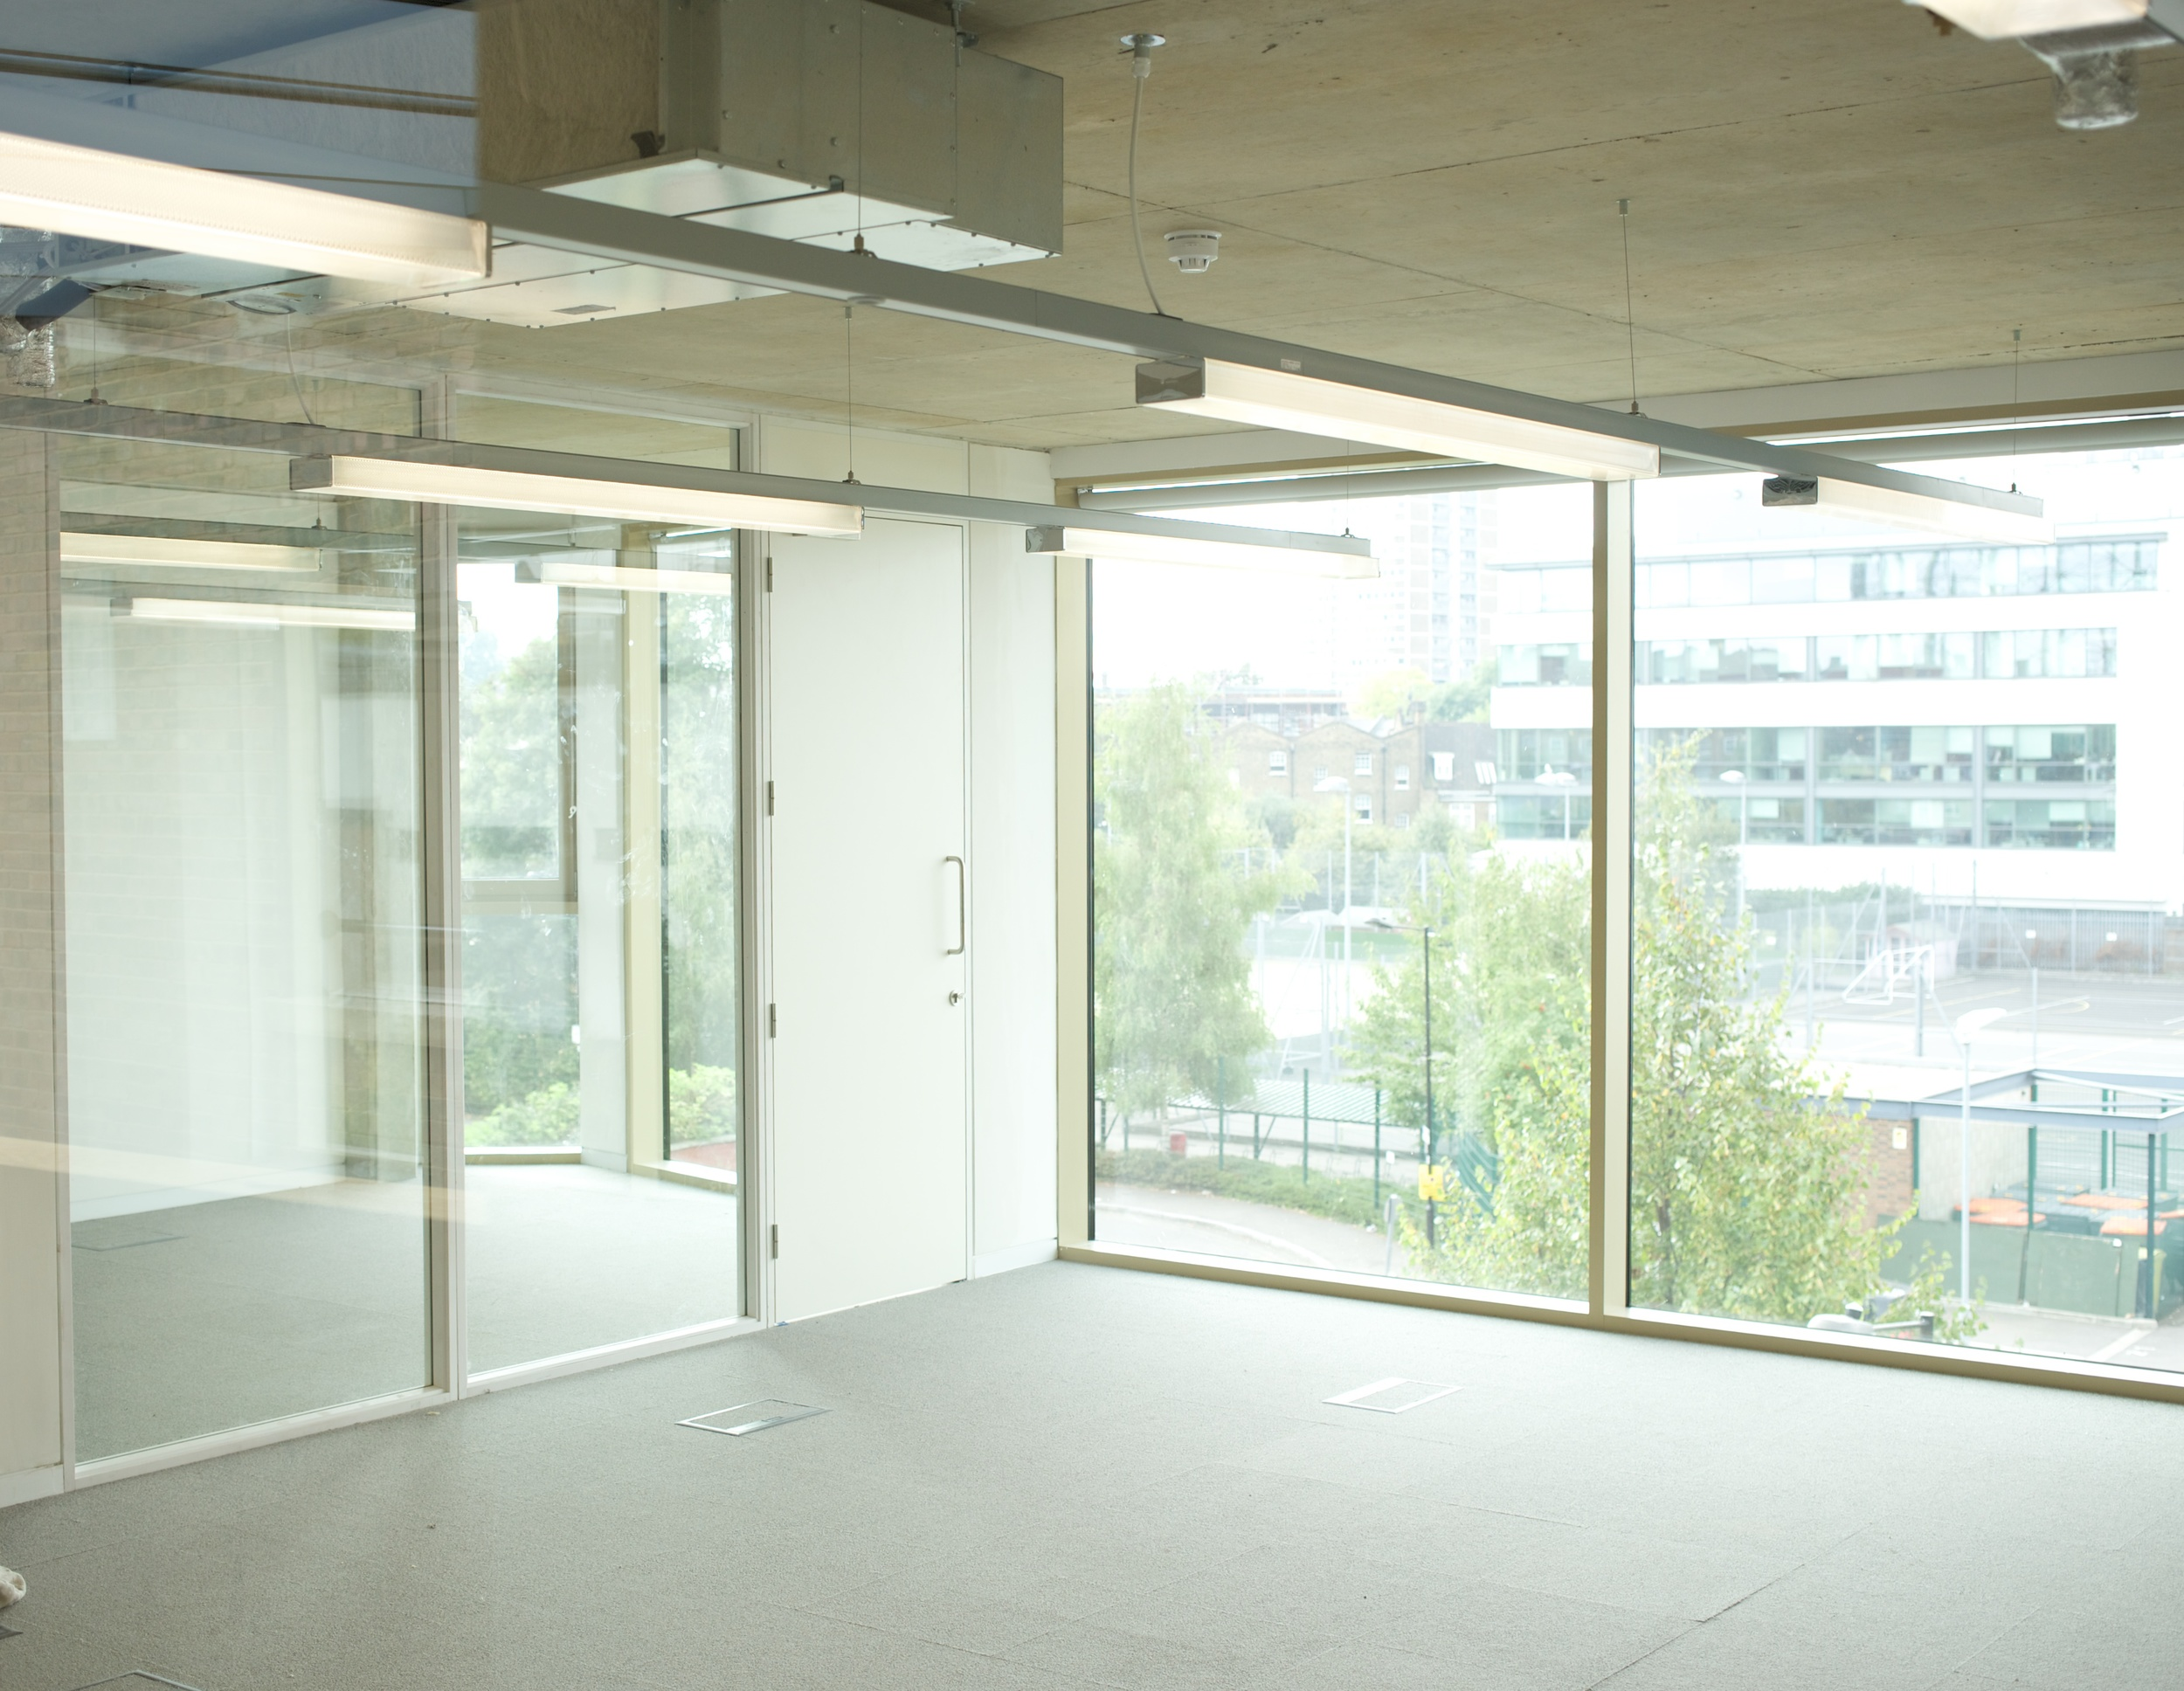 First floor office space, The Foundry, Vauxhall.